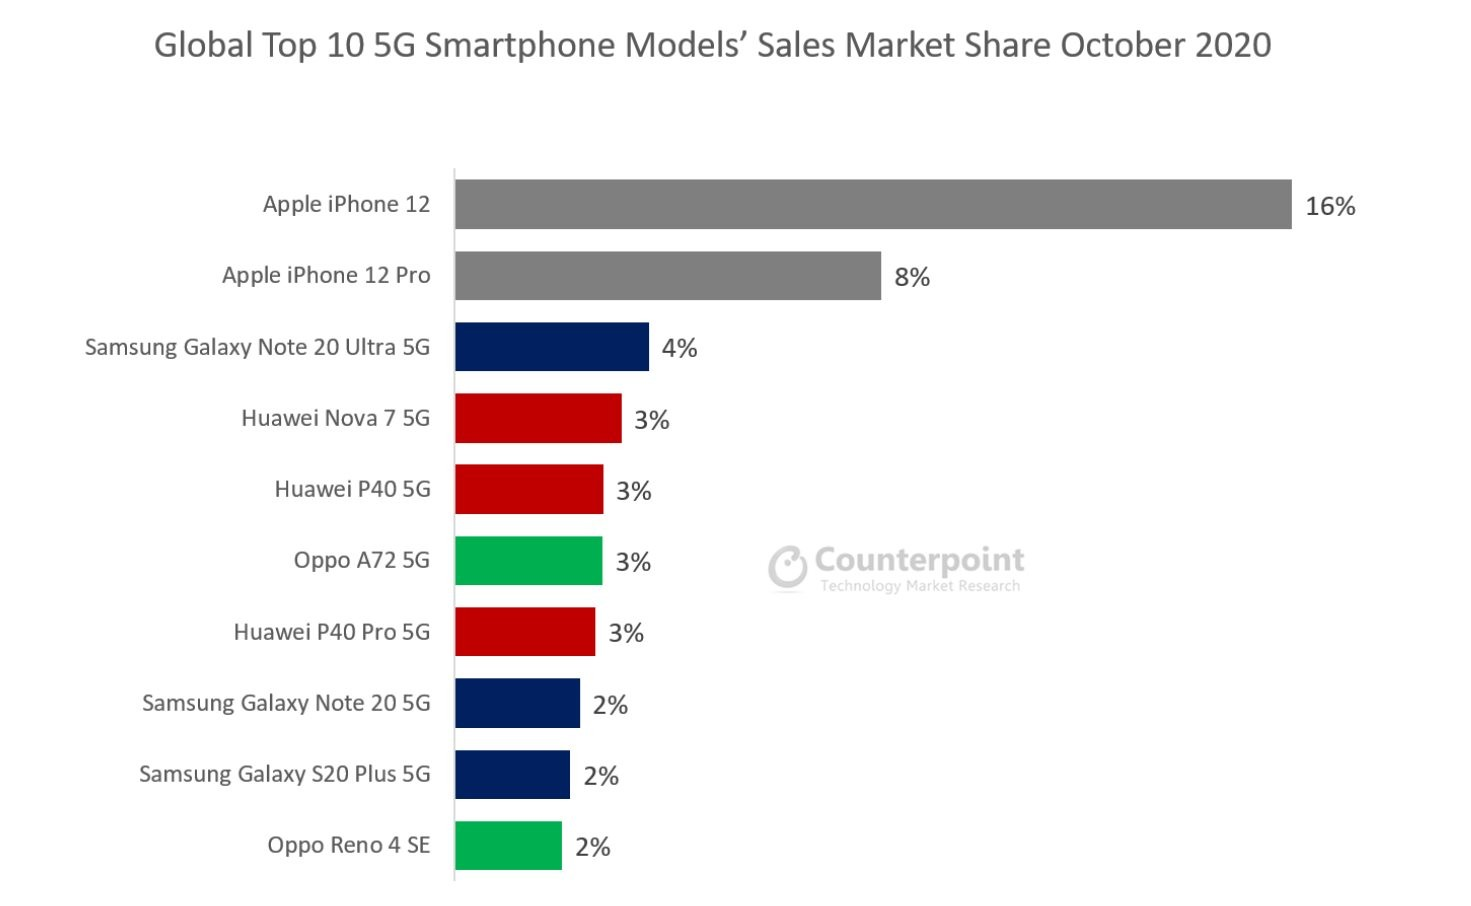 Apple's iPhone 12 Bestselling 5G Smartphone in October, Despite Its Delayed Launch